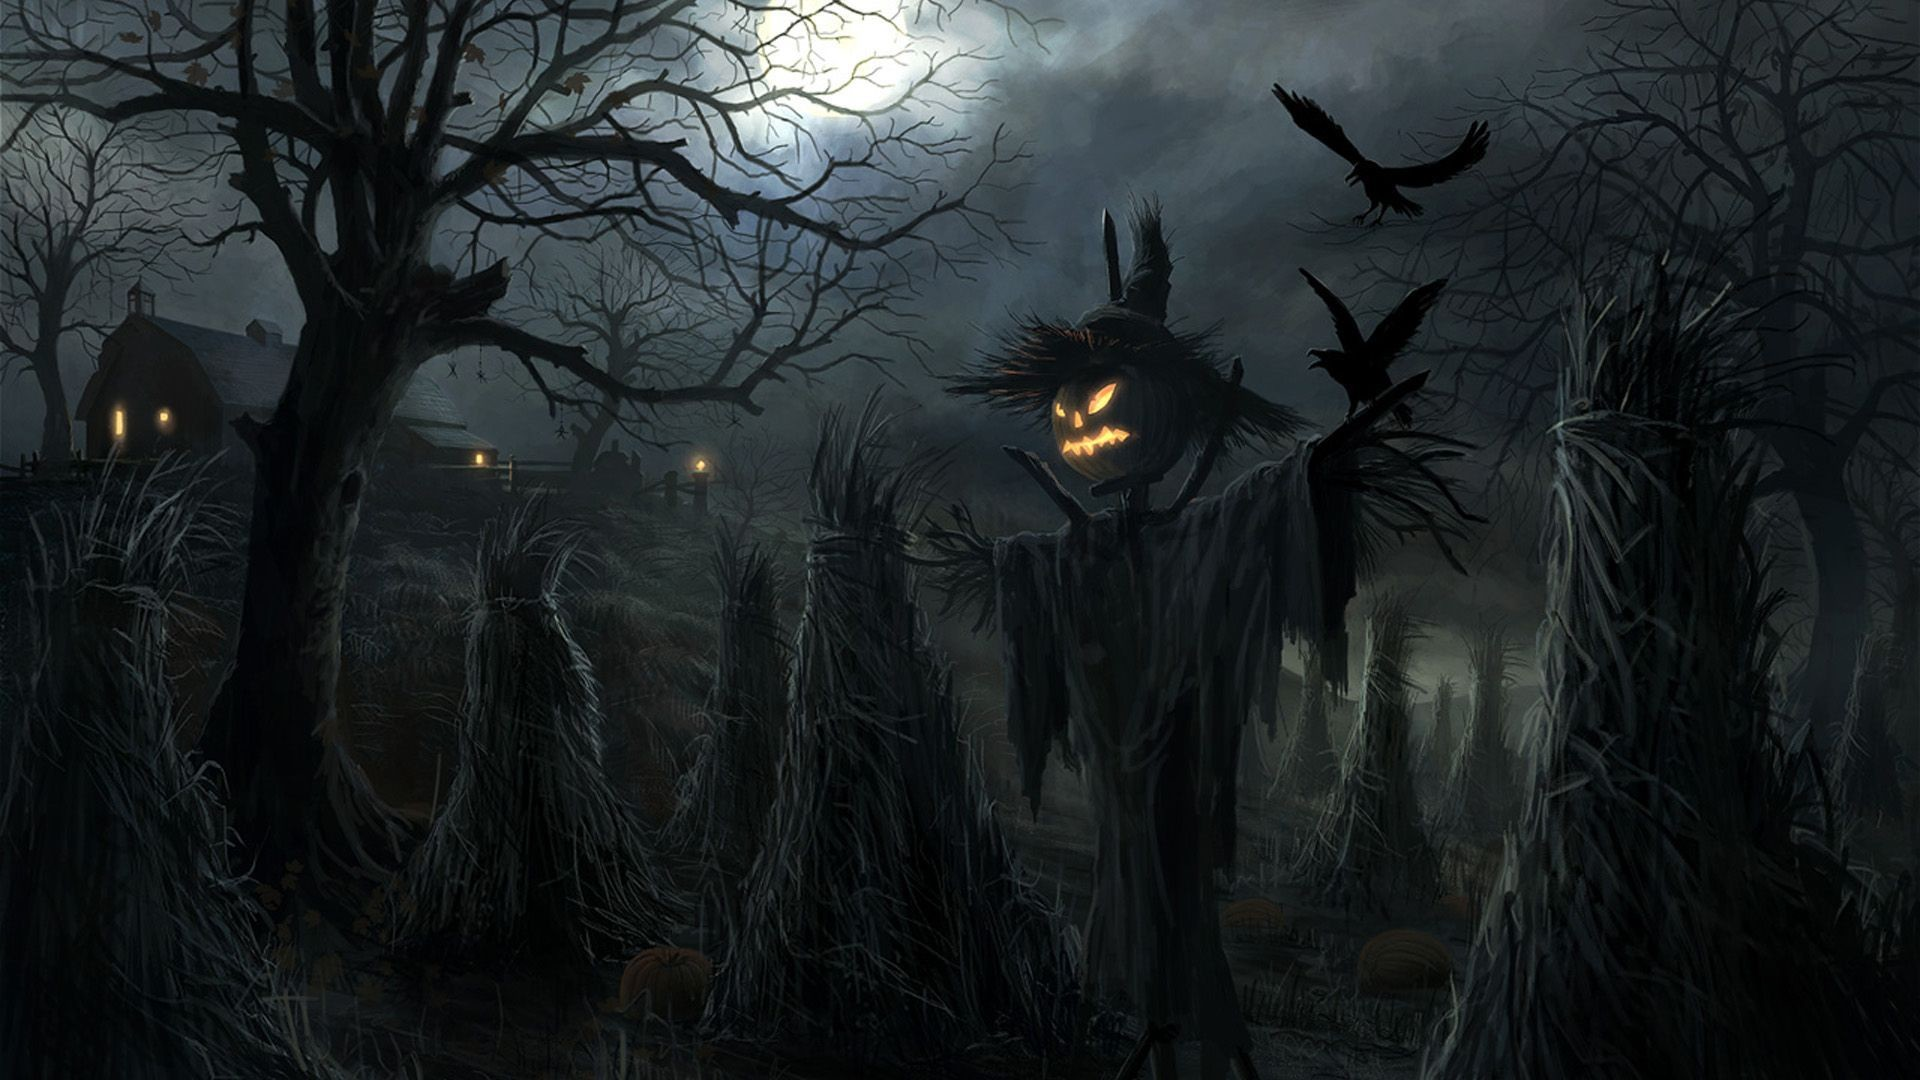 Res: 1920x1080, Magnificent Halloween 2016 Wallpapers, for PC & Mac, Tablet, Laptop, Mobile